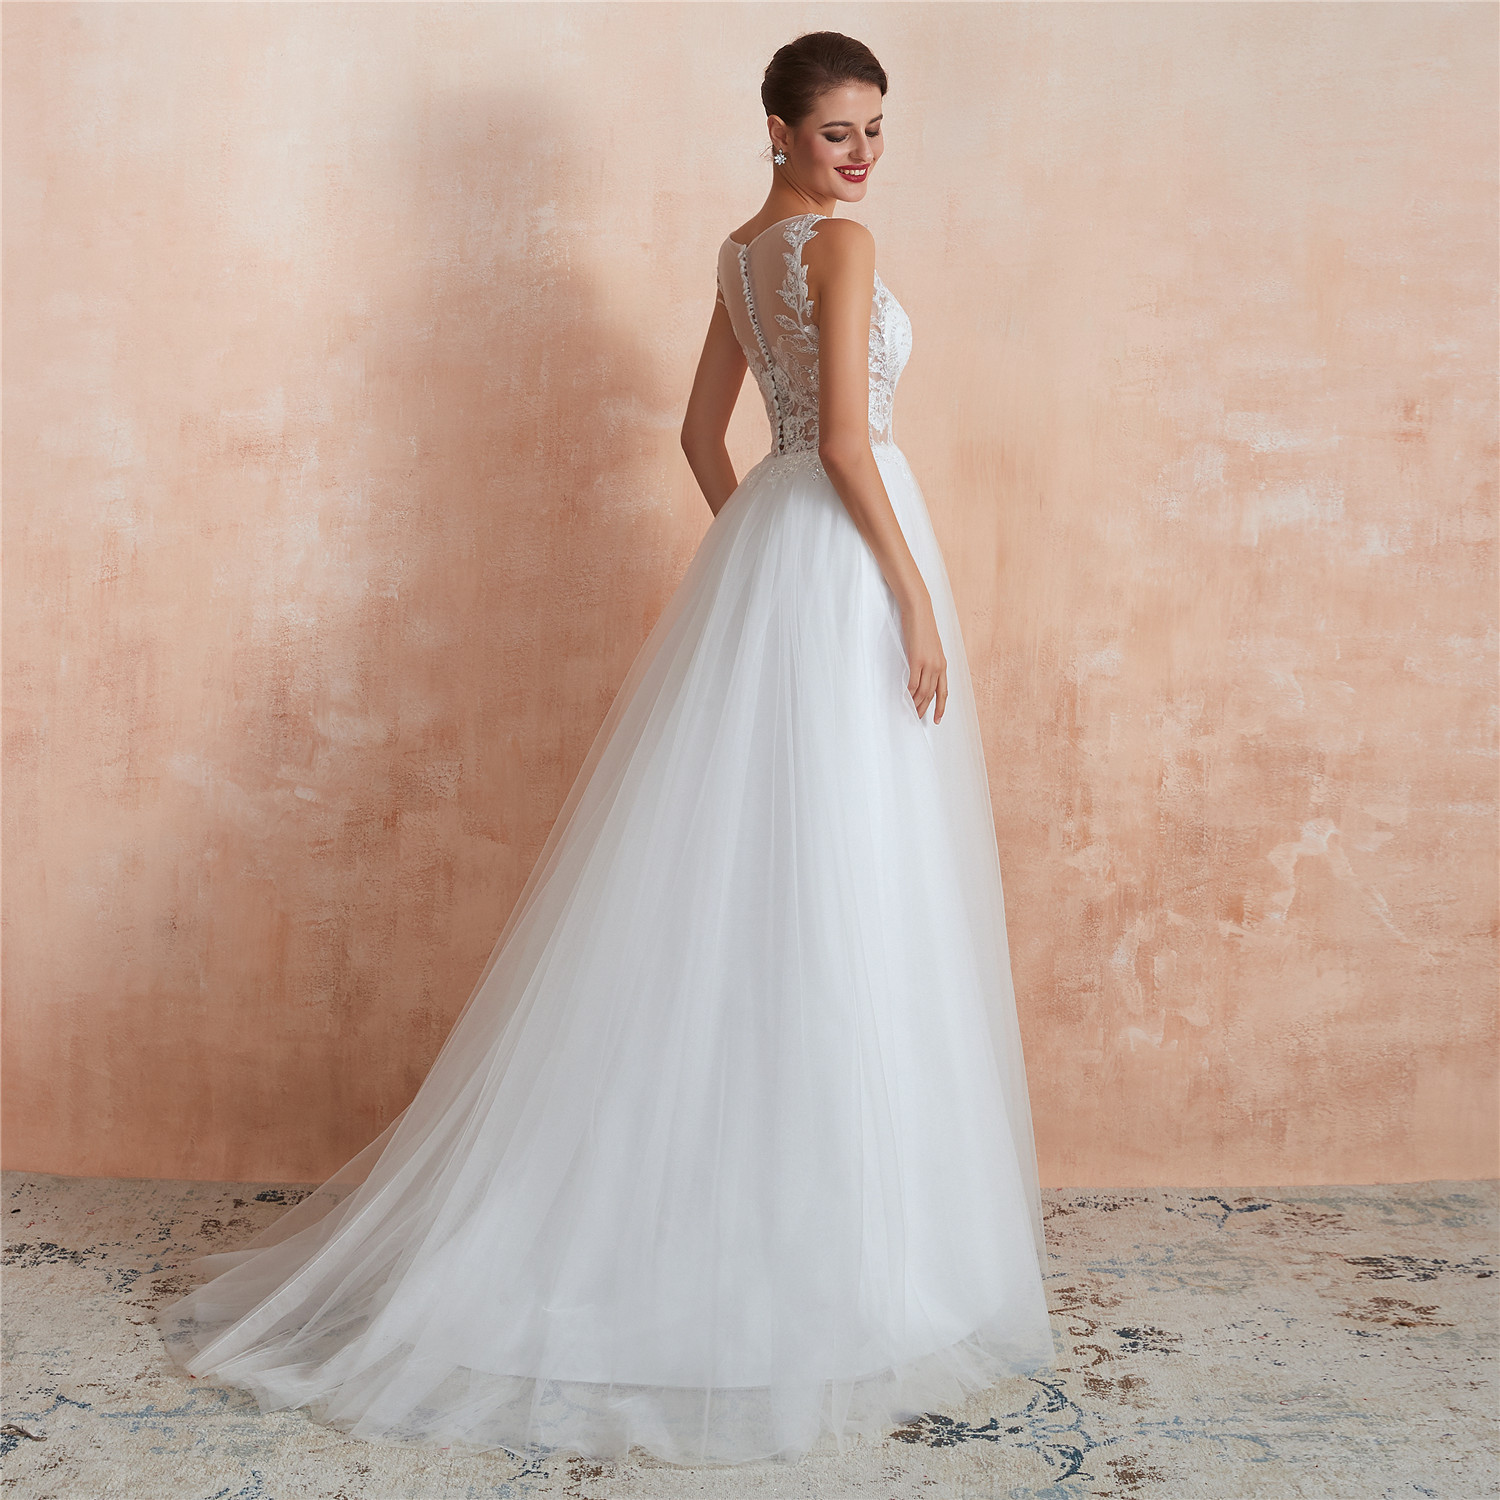 Sexy o-neck  Lace Dot Tulle Bride Beach Casual Bride Gown Sling backless  Sequin wedding dress Simple Boho Wedding Dress 2020